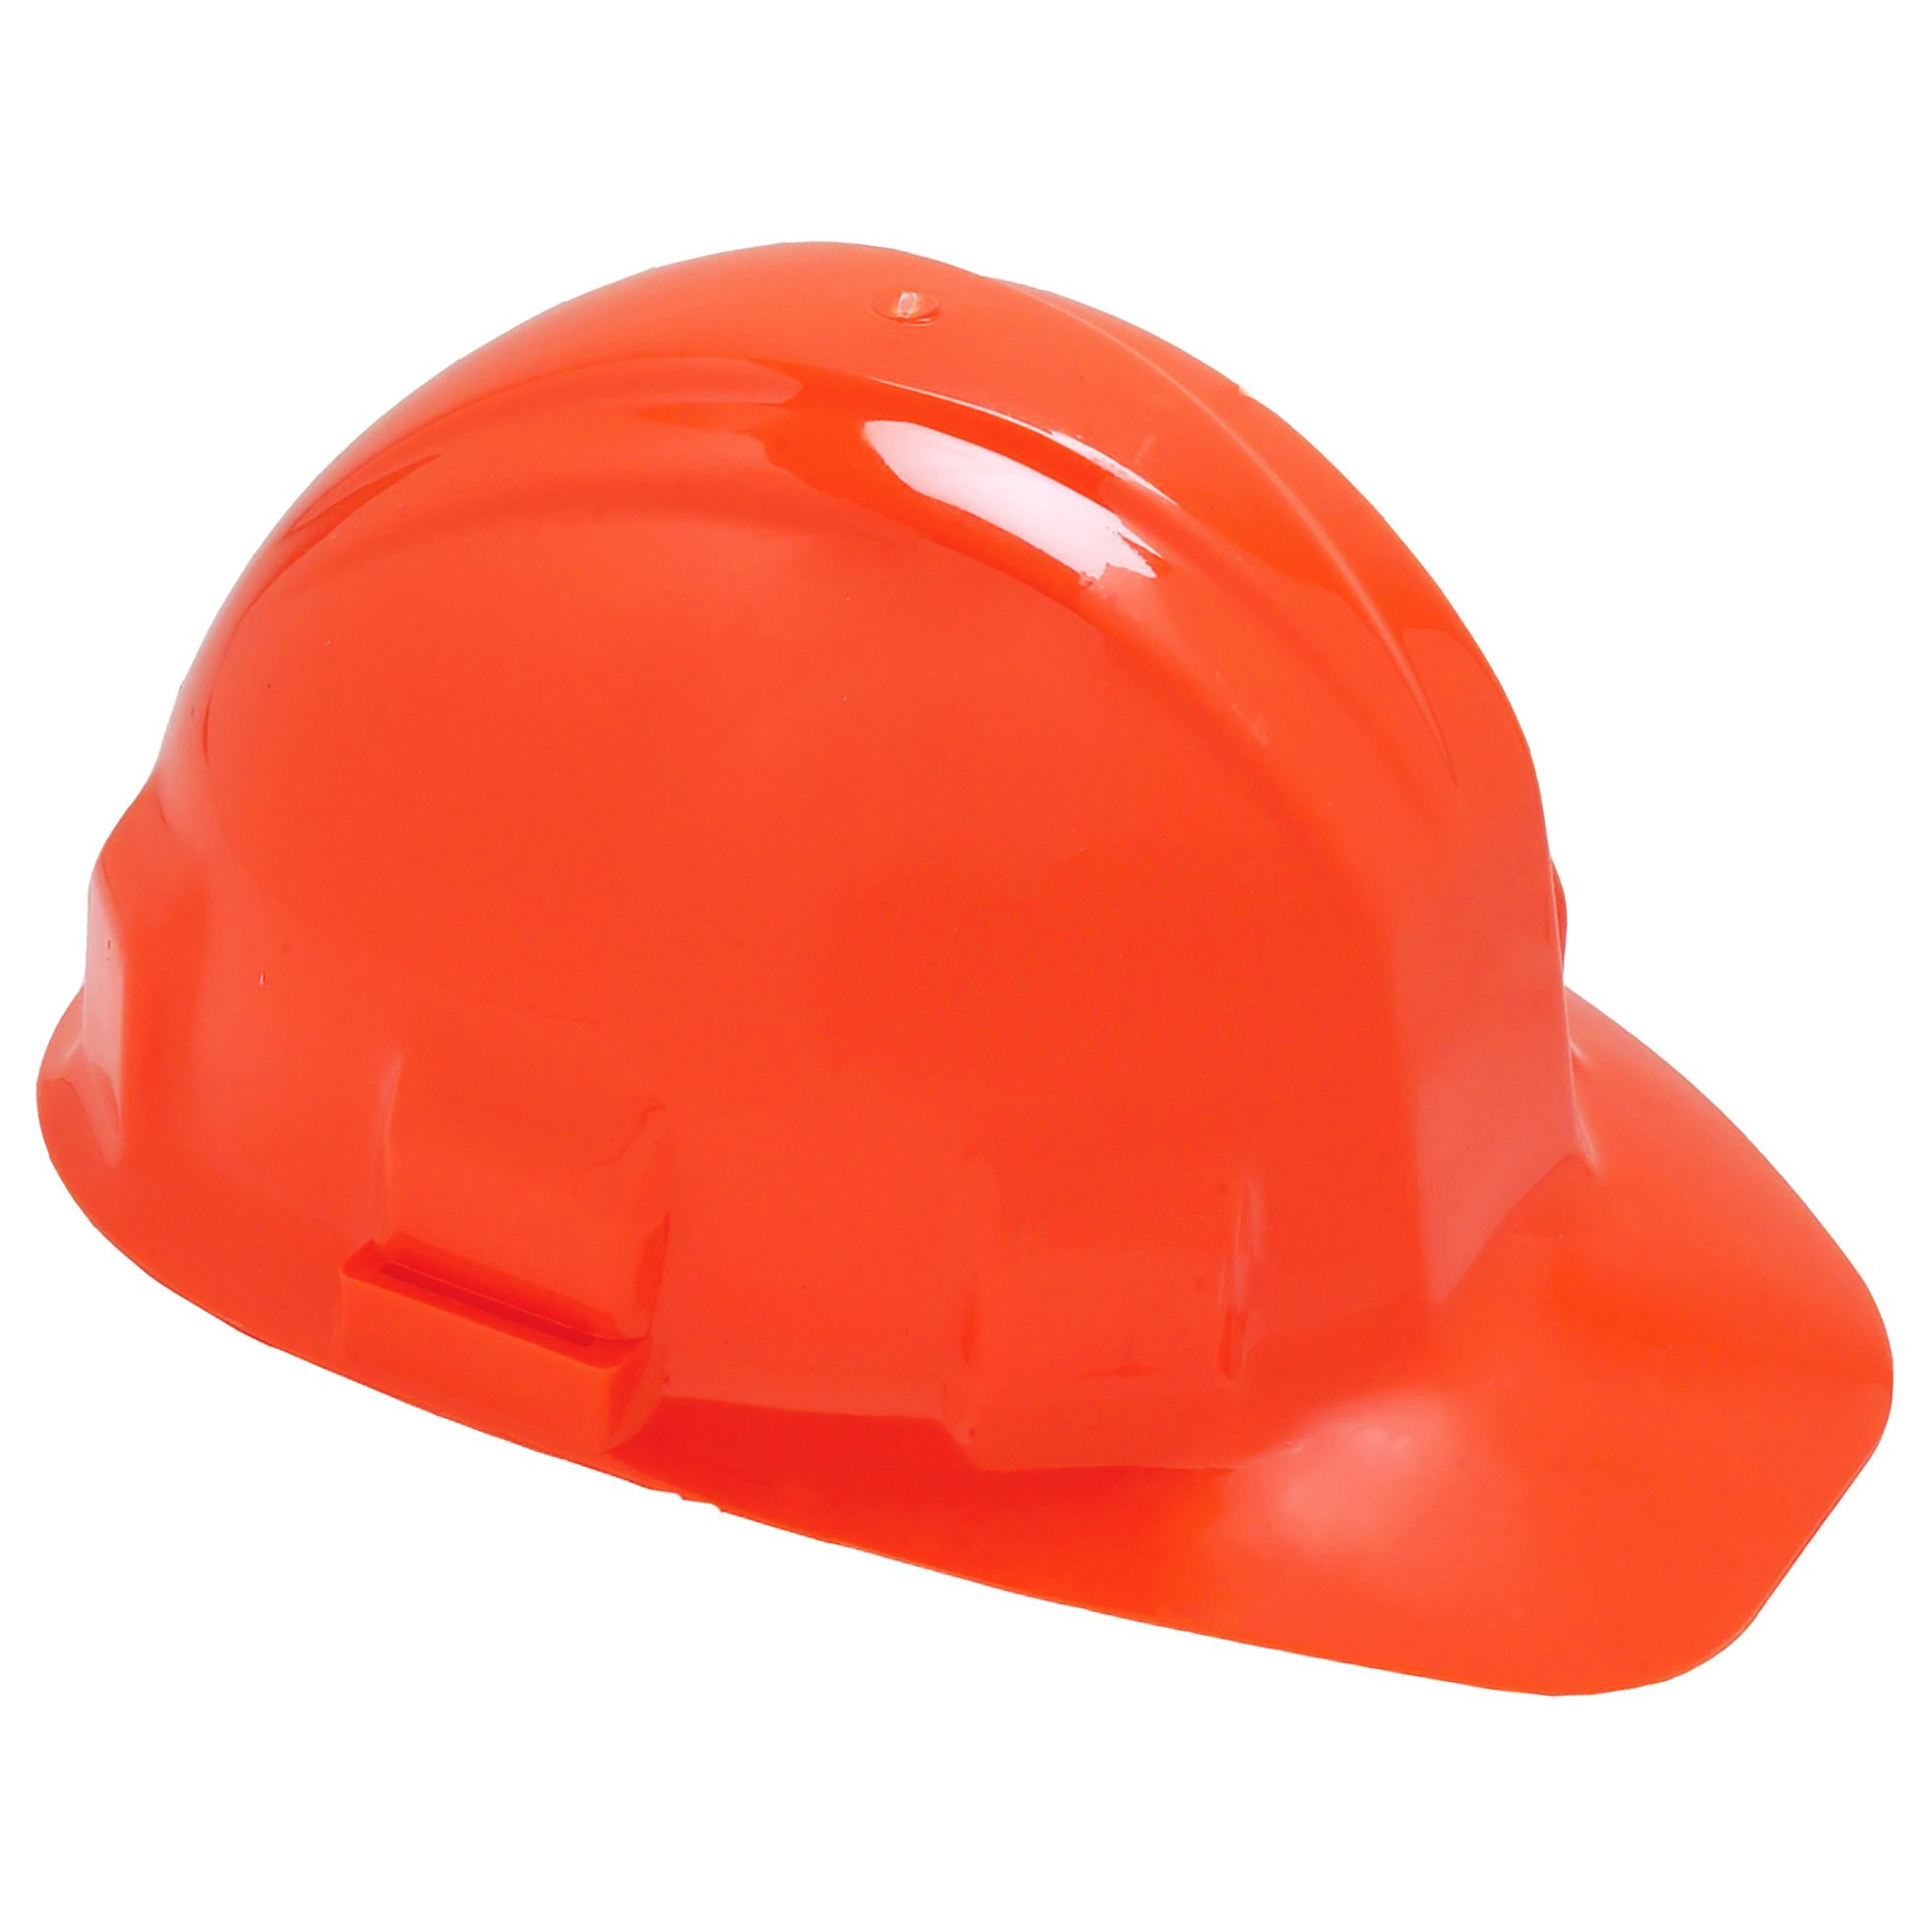 Jackson Safety Sentry III Hard Hat (14423), 6-Point Ratchet Suspension, Low Profile Safety Cap, Hi-VIZ Orange, 12 / Case